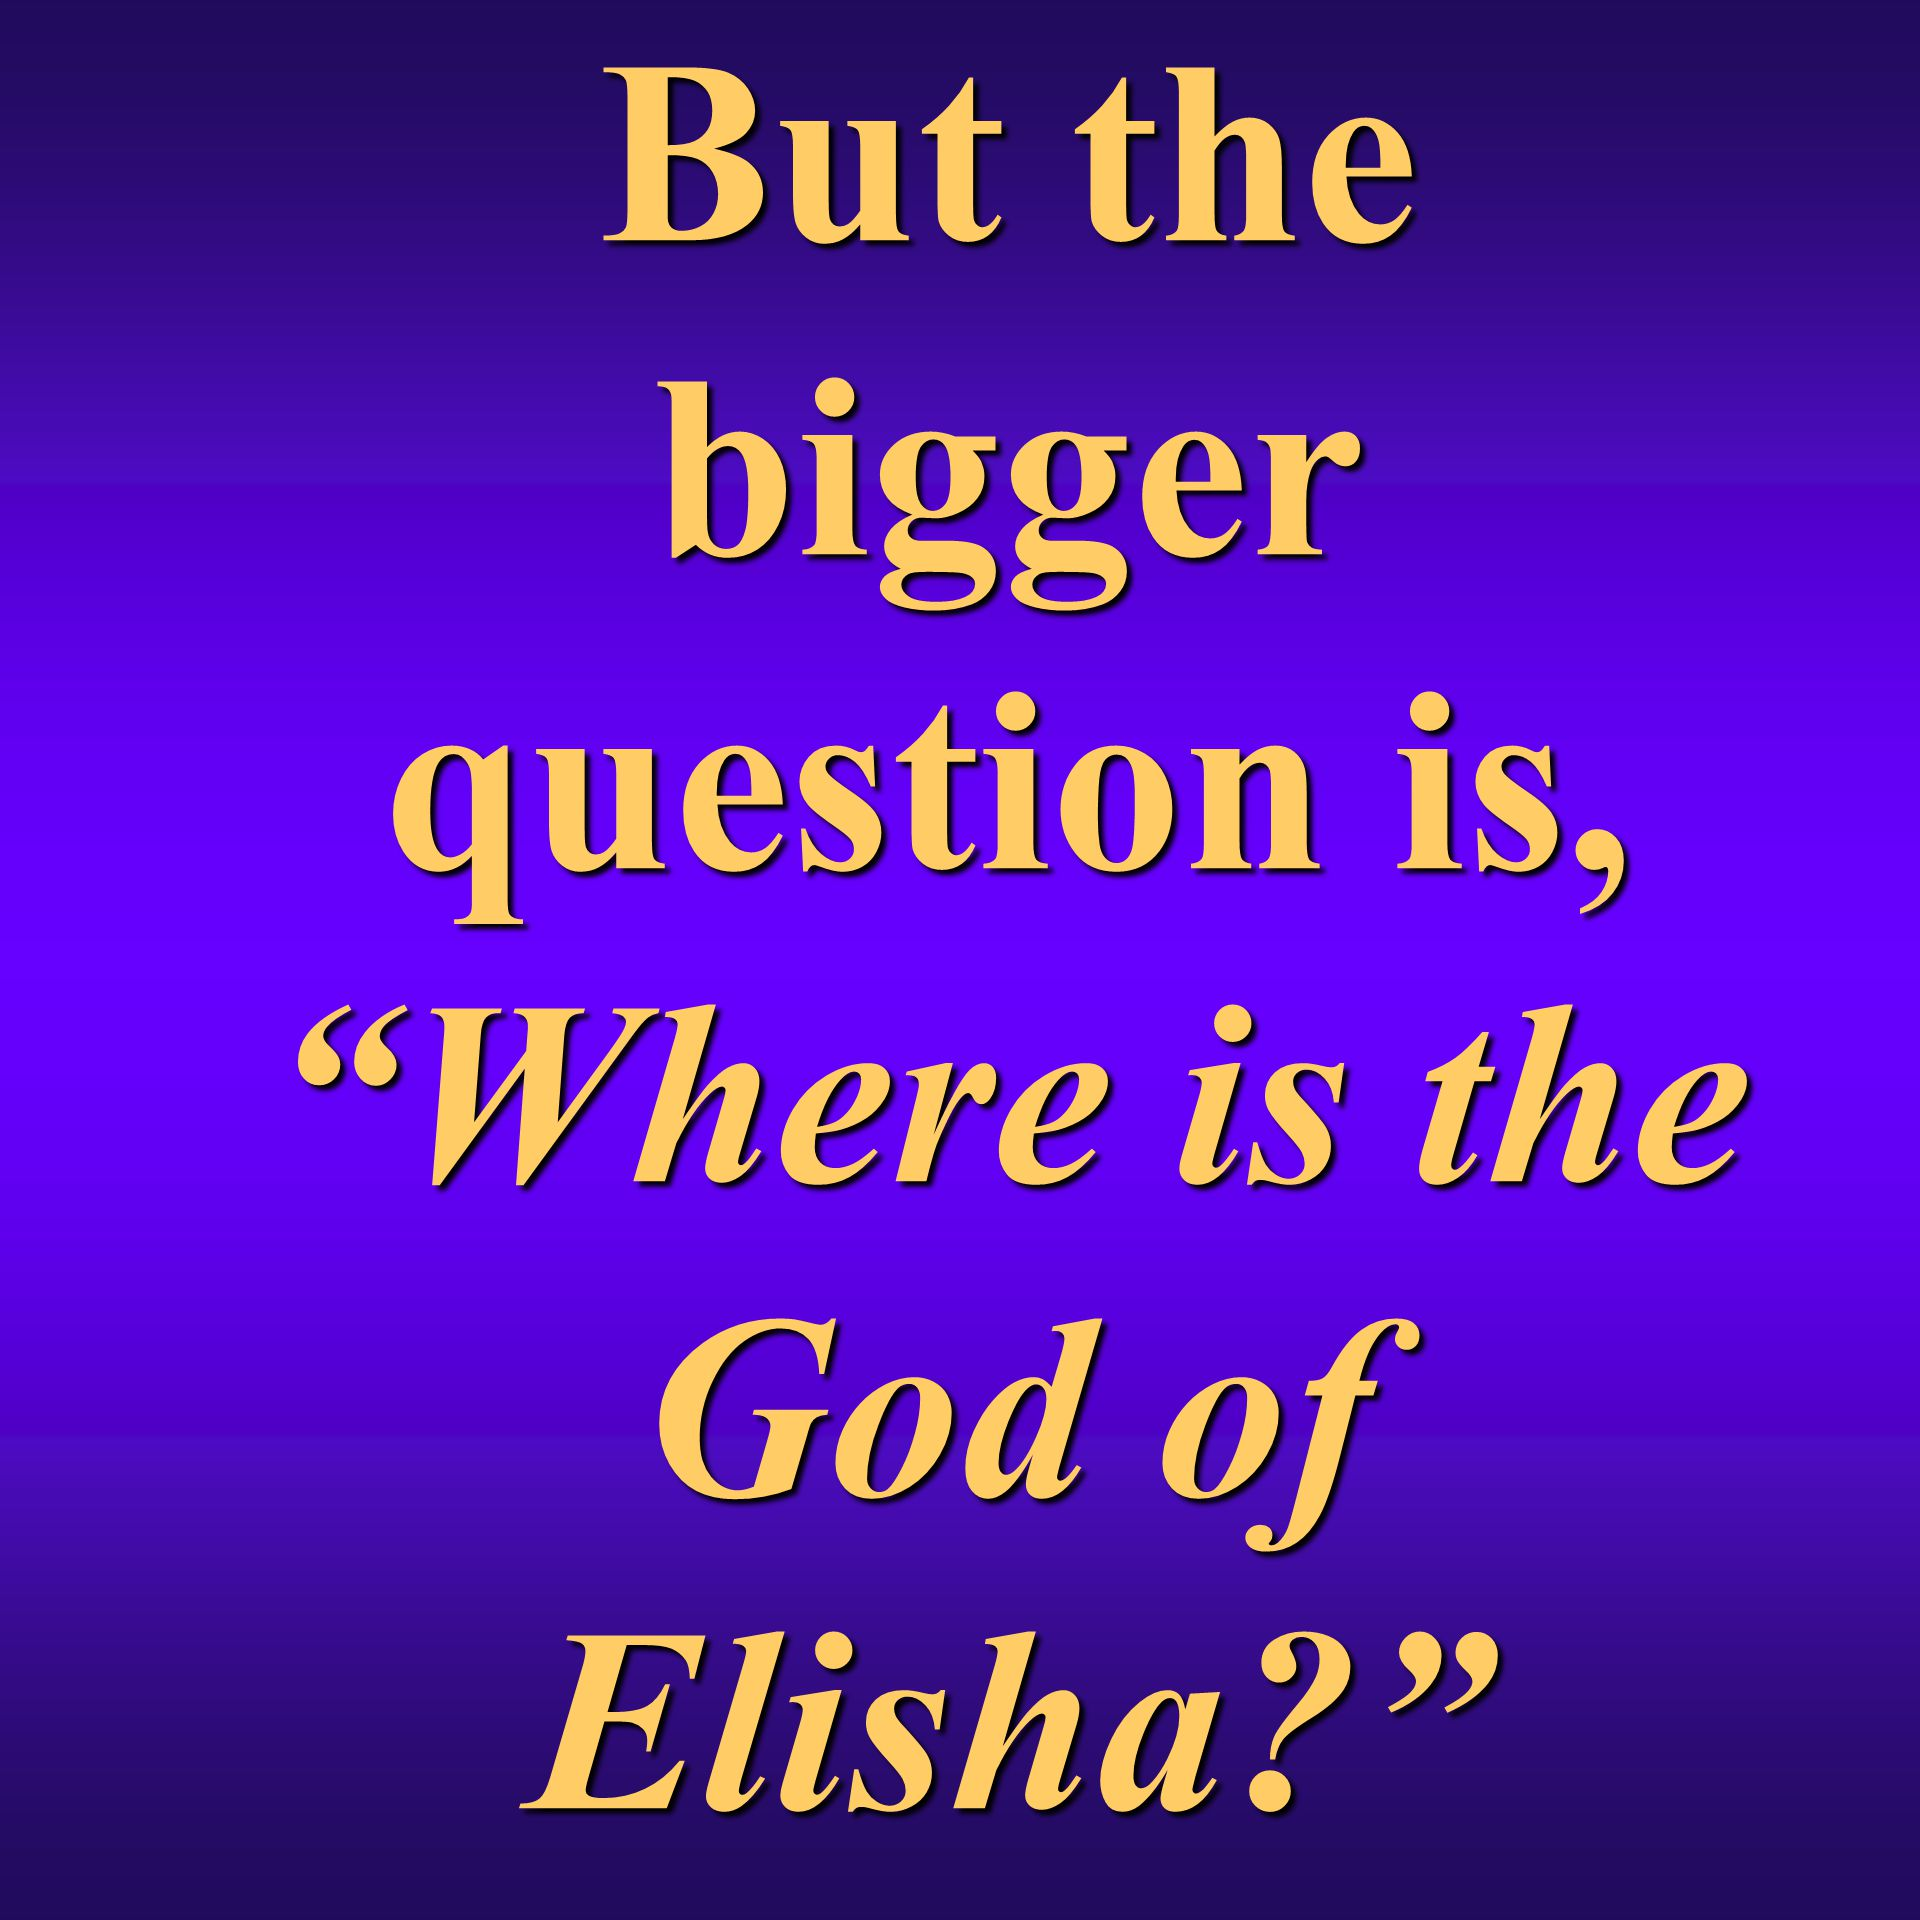 But the bigger question is, Where is the God of Elisha?